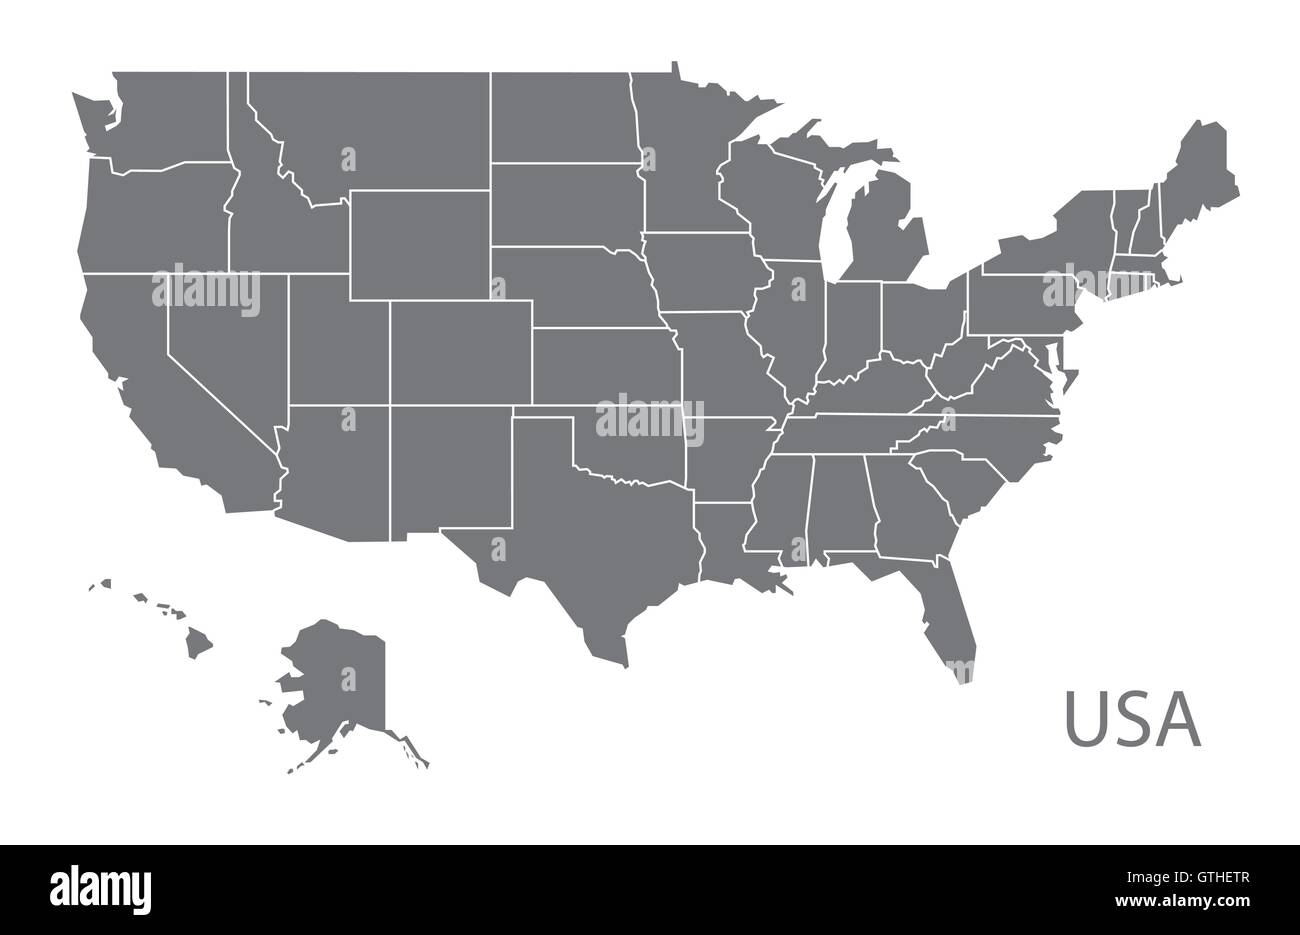 Map Of United States Vector Vectors Stock Photos & Map Of United ...